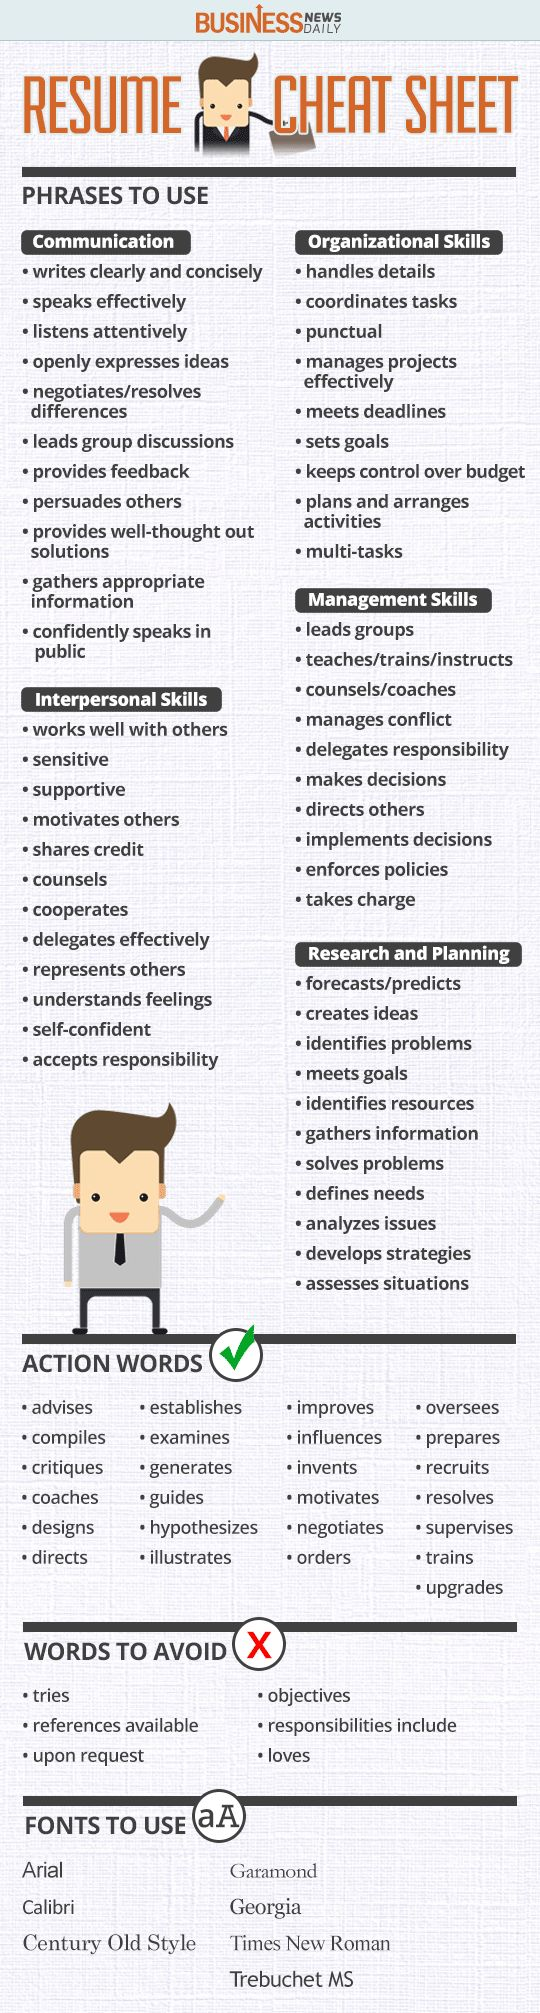 Opposenewapstandardsus  Terrific  Ideas About Resume On Pinterest  Cv Format Resume Cv And  With Foxy Resume Cheat Sheet Infographic Andrews Almost Done With A Complete Unit On Employment Which With Extraordinary Sales Coordinator Resume Also Resuming Windows In Addition Management Analyst Resume And How To Make Resume One Page As Well As Design Engineer Resume Additionally Training Specialist Resume From Pinterestcom With Opposenewapstandardsus  Foxy  Ideas About Resume On Pinterest  Cv Format Resume Cv And  With Extraordinary Resume Cheat Sheet Infographic Andrews Almost Done With A Complete Unit On Employment Which And Terrific Sales Coordinator Resume Also Resuming Windows In Addition Management Analyst Resume From Pinterestcom